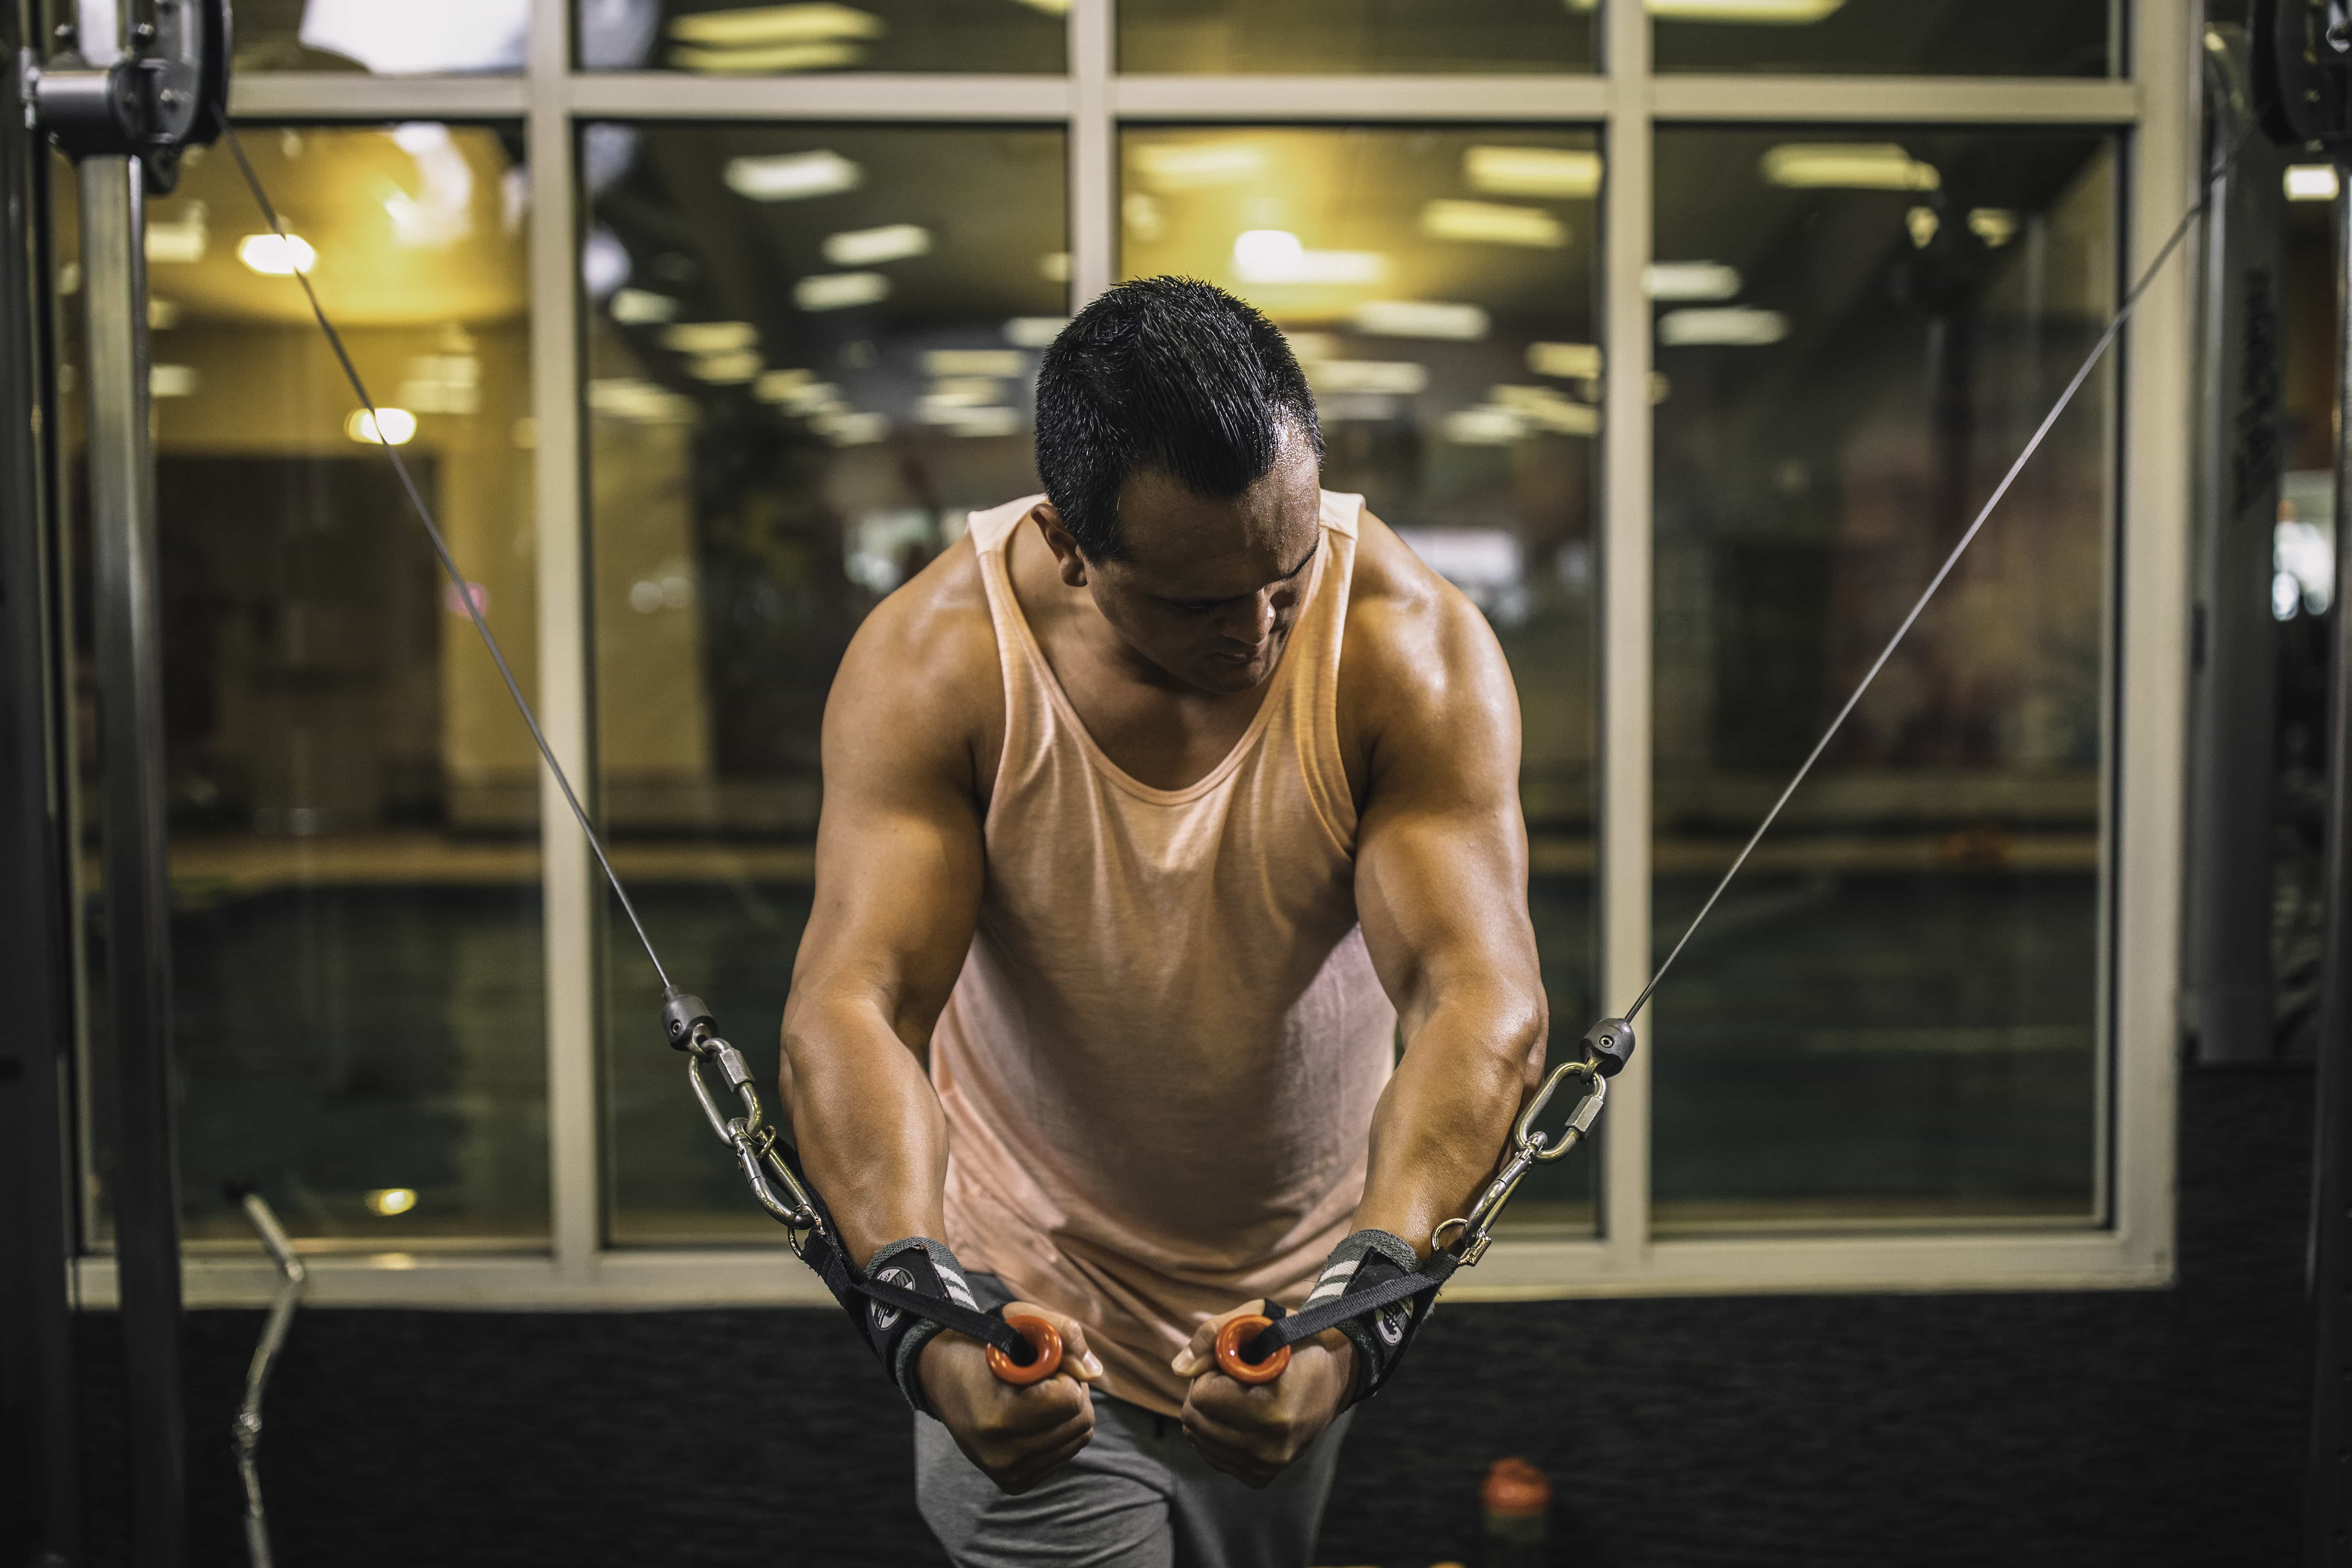 LA Fitness, LA Fitness Living Healthy blog, fitness, LA Fitness community, gym support, LA Fitness motivation, member spotlight, motivational story, Bryson I., transformation story, lifting, strength, devotion, dedication, Bryson I.